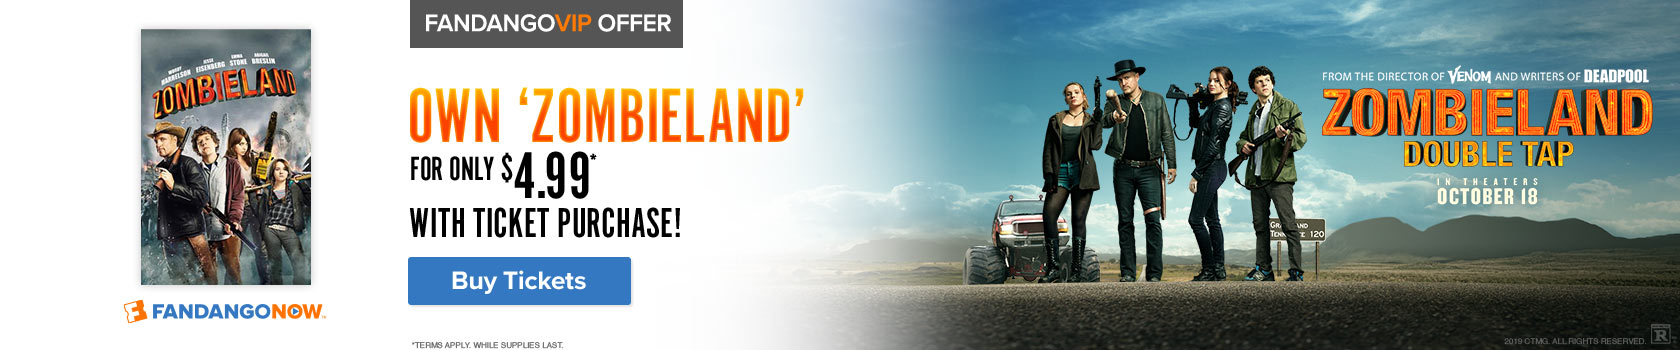 Fandango 'Zombieland: Double Tap' Gift with Purchase